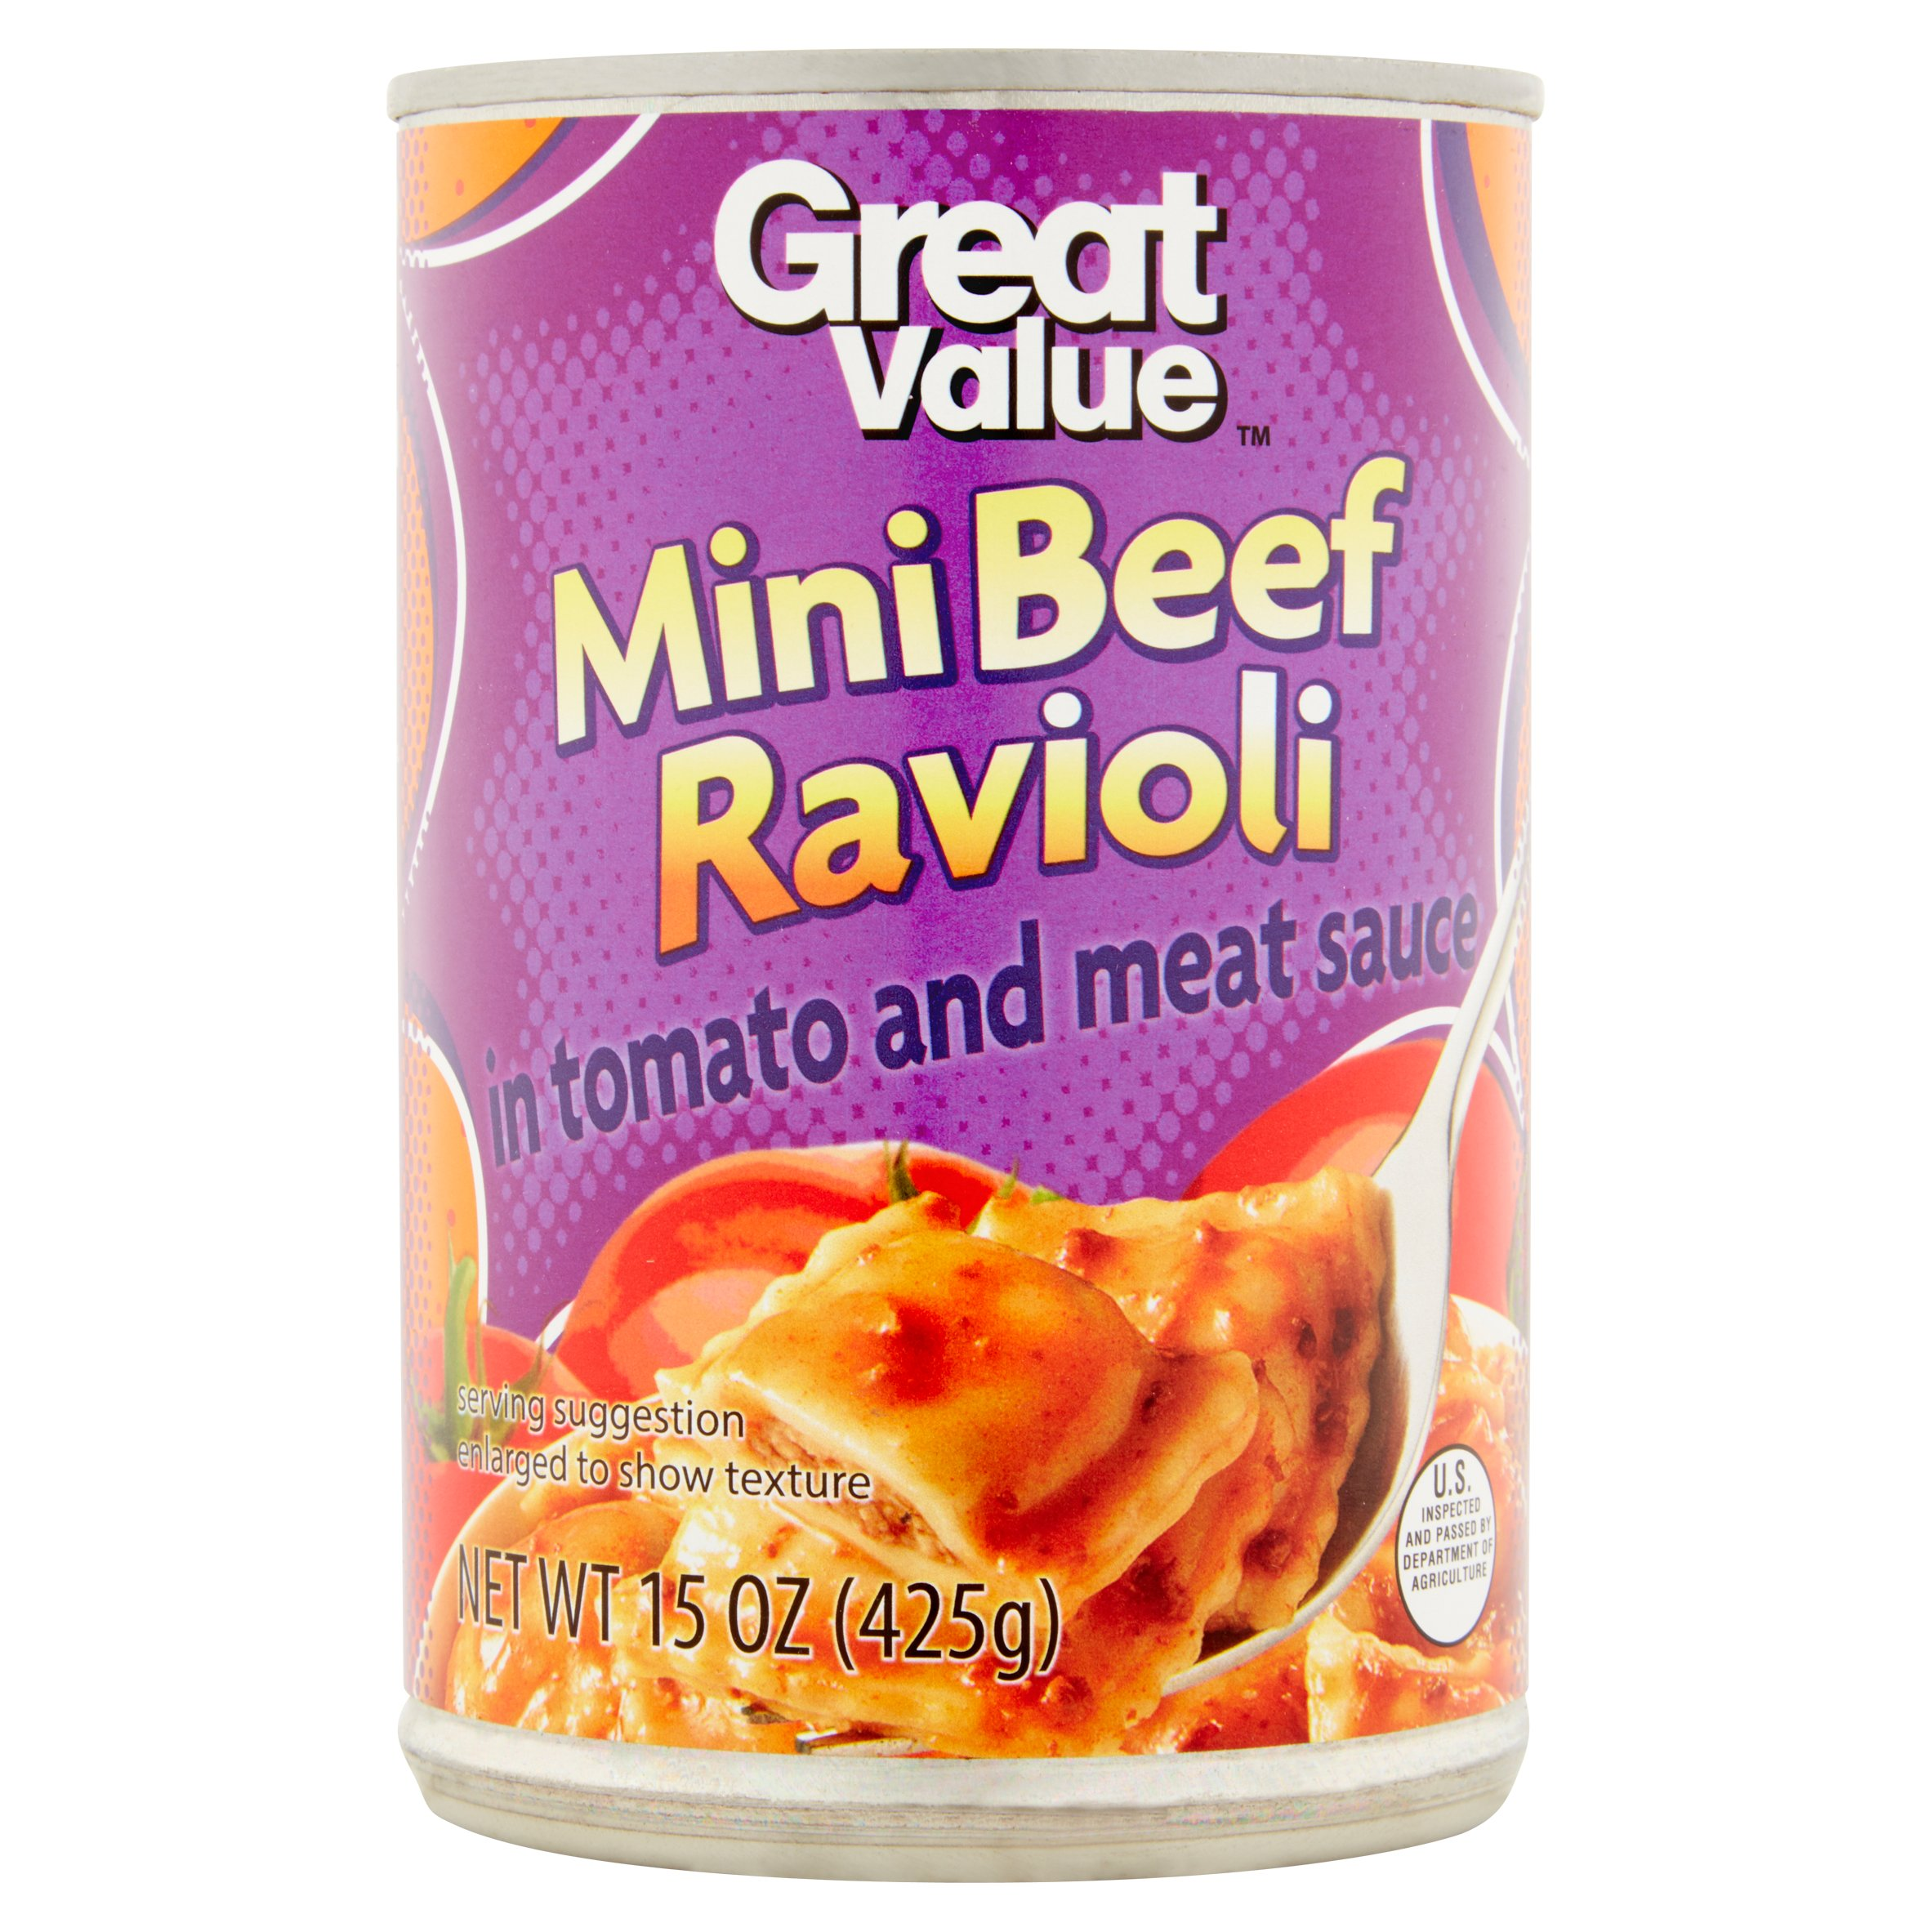 Great Value Mini Beef Ravioli, 15 oz by Wal-Mart Stores, Inc.